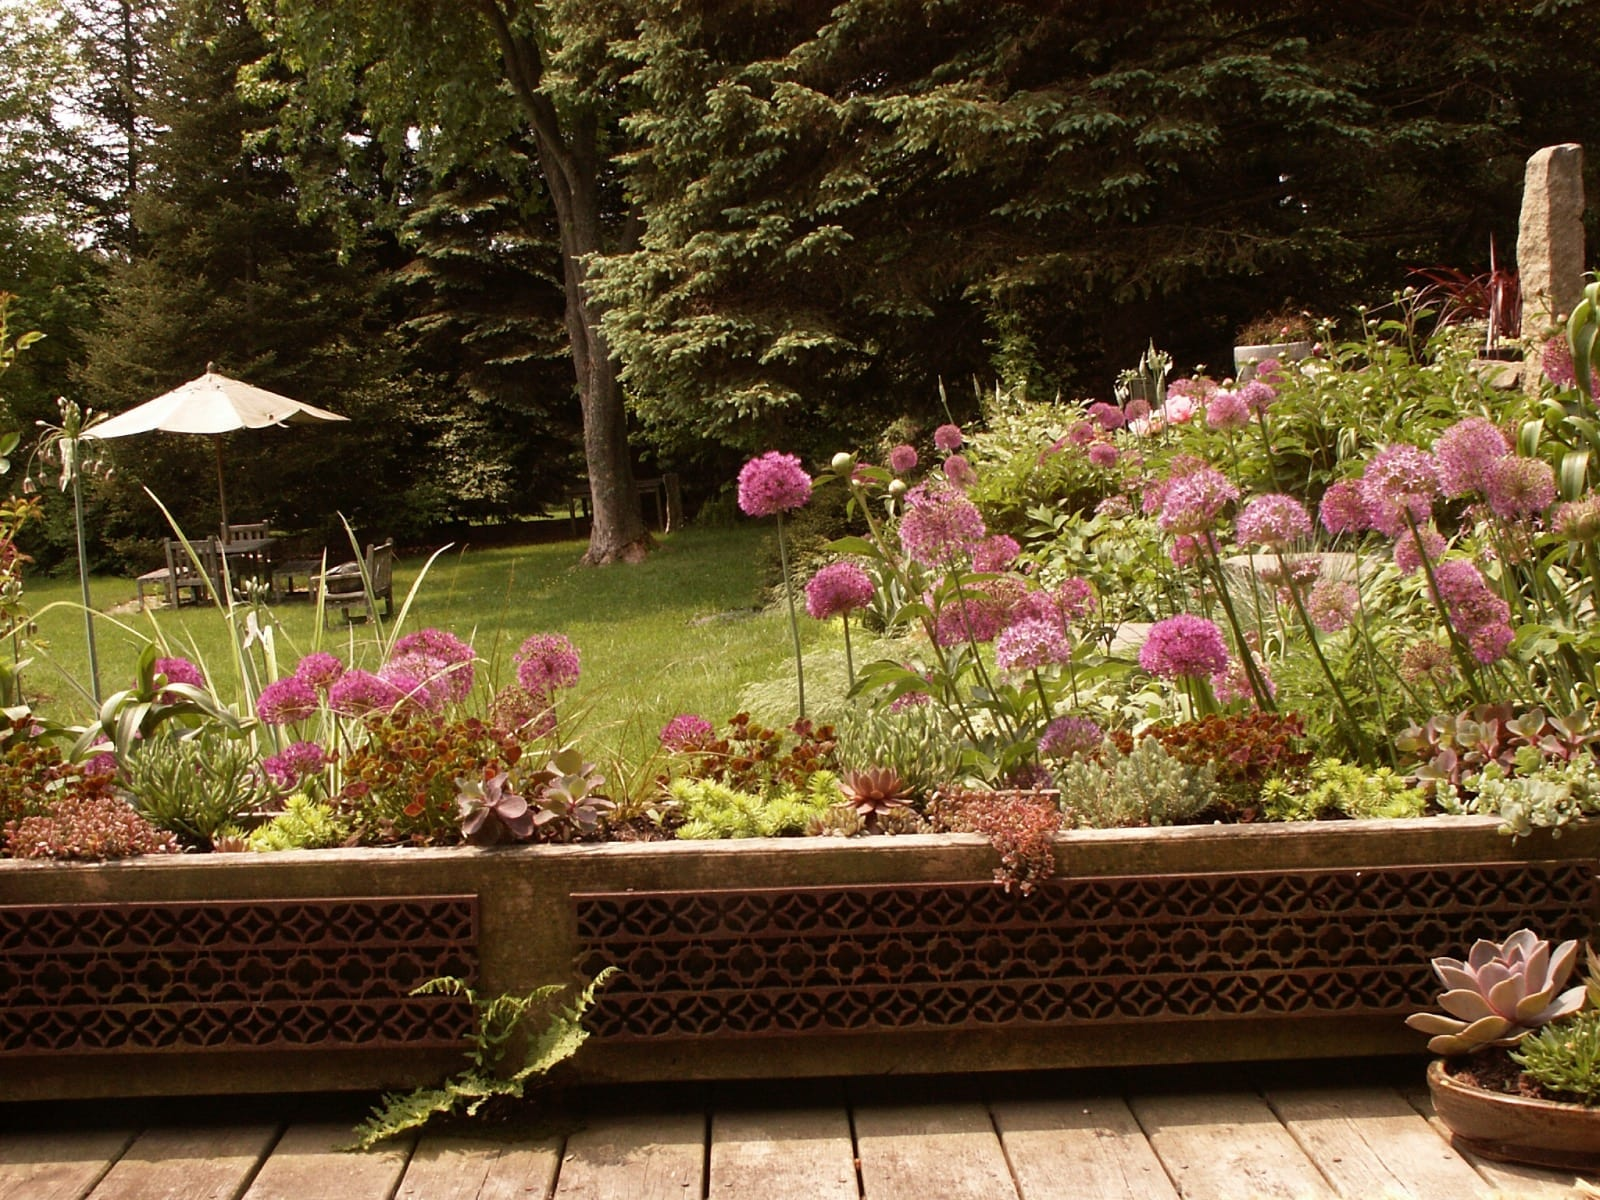 Mixing It Up - Can Edibles and Ornamentals Get Along in a Designed ...